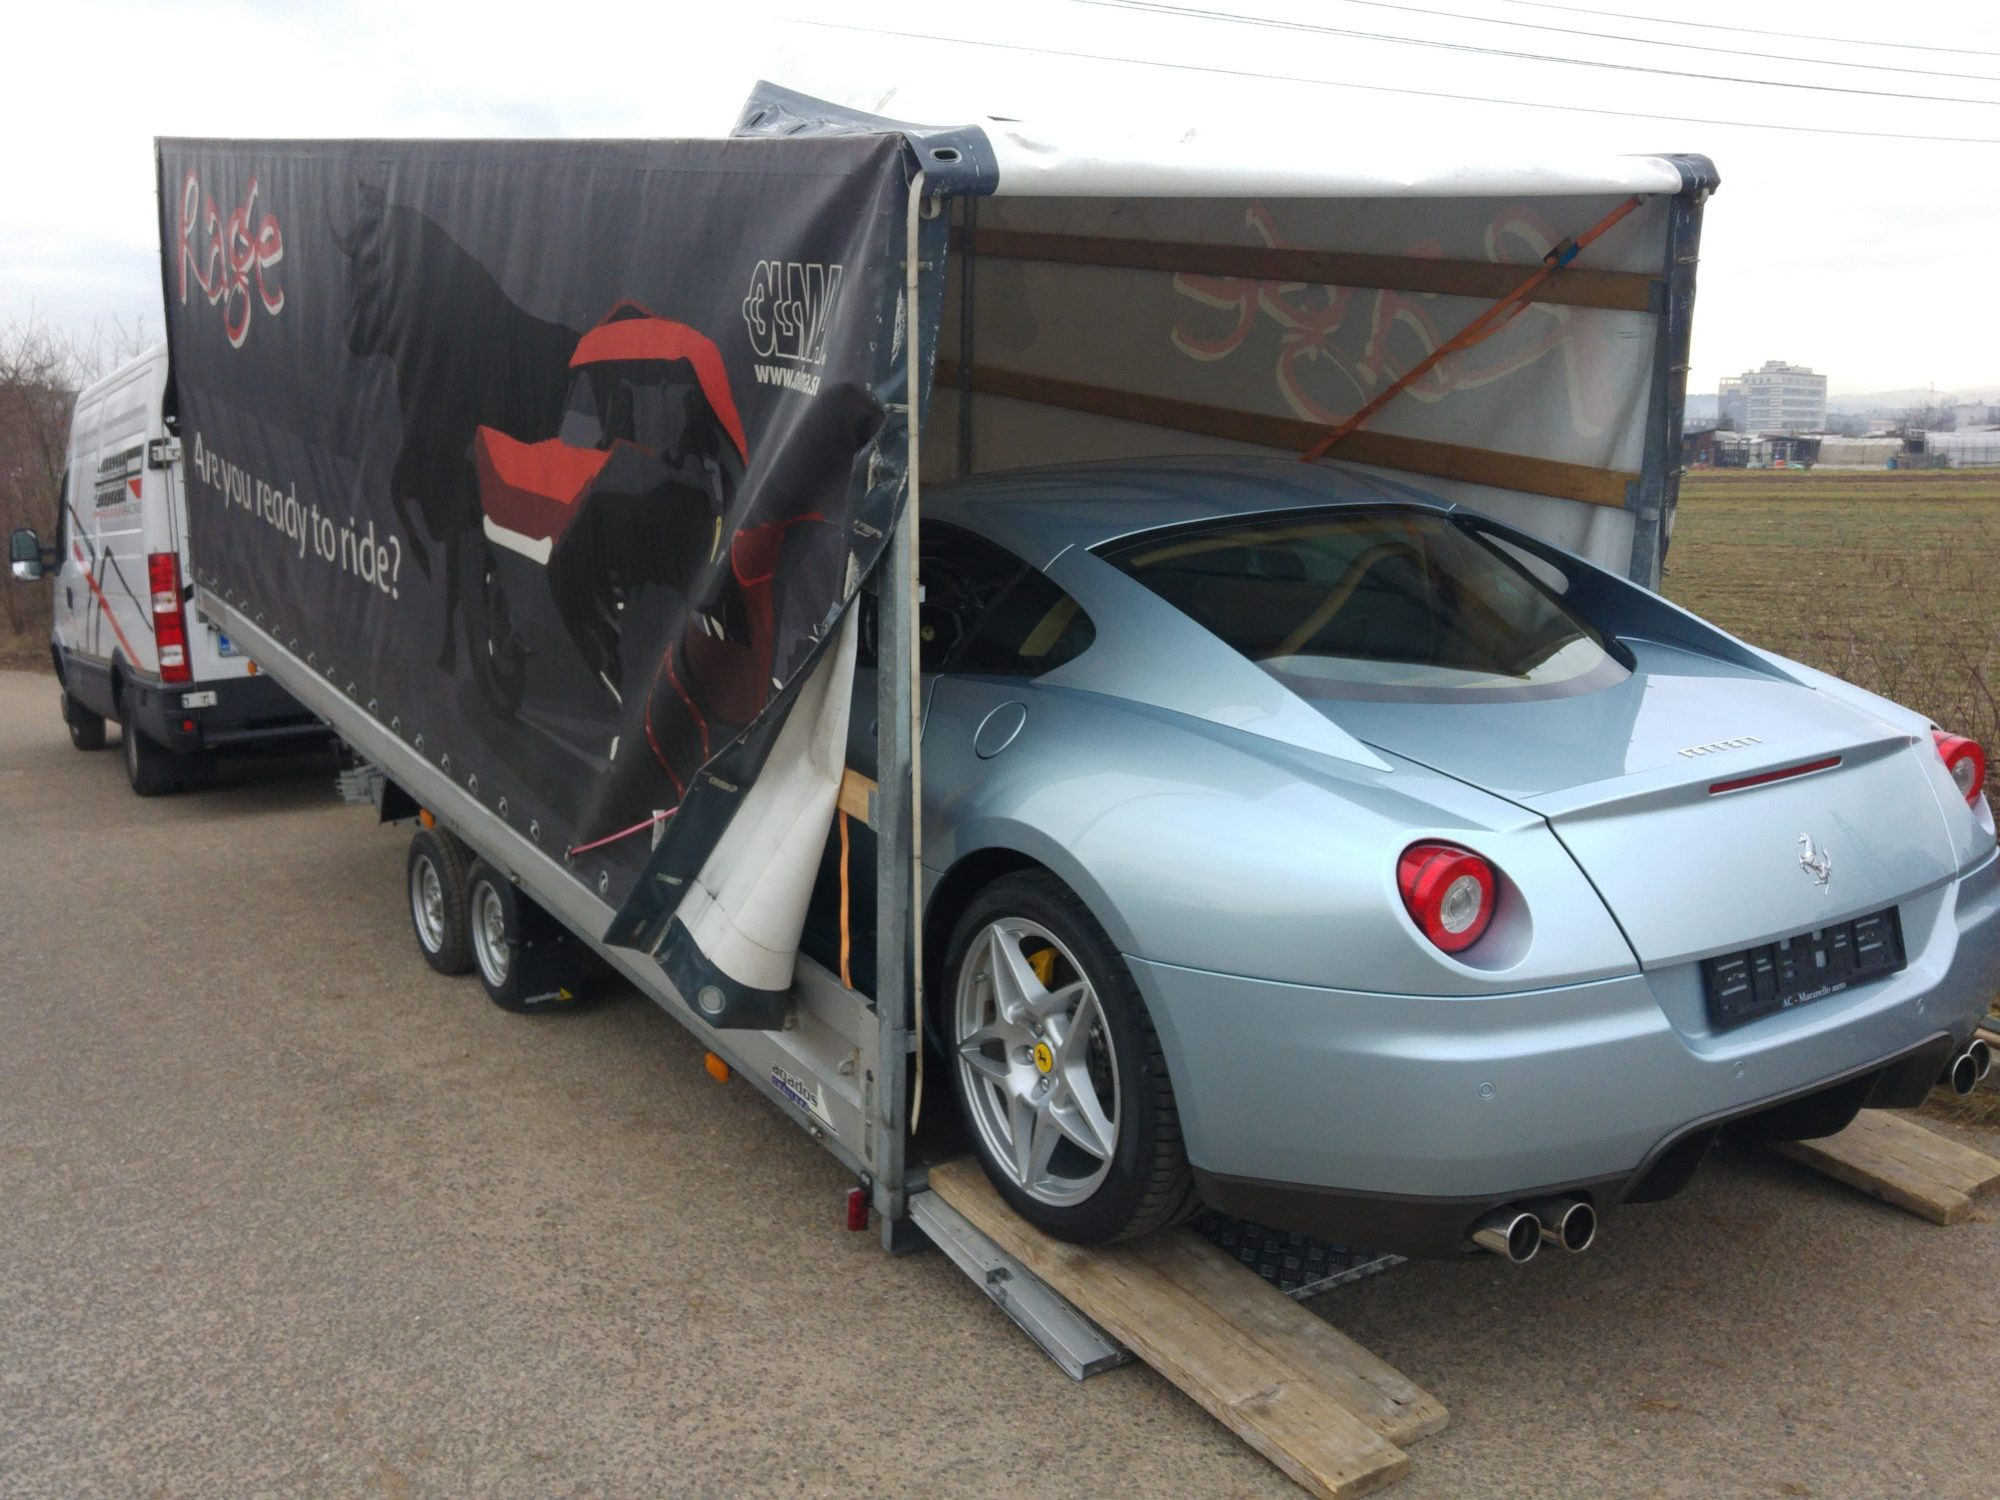 Pirman Racing Ferrari transport 3, 6100mm